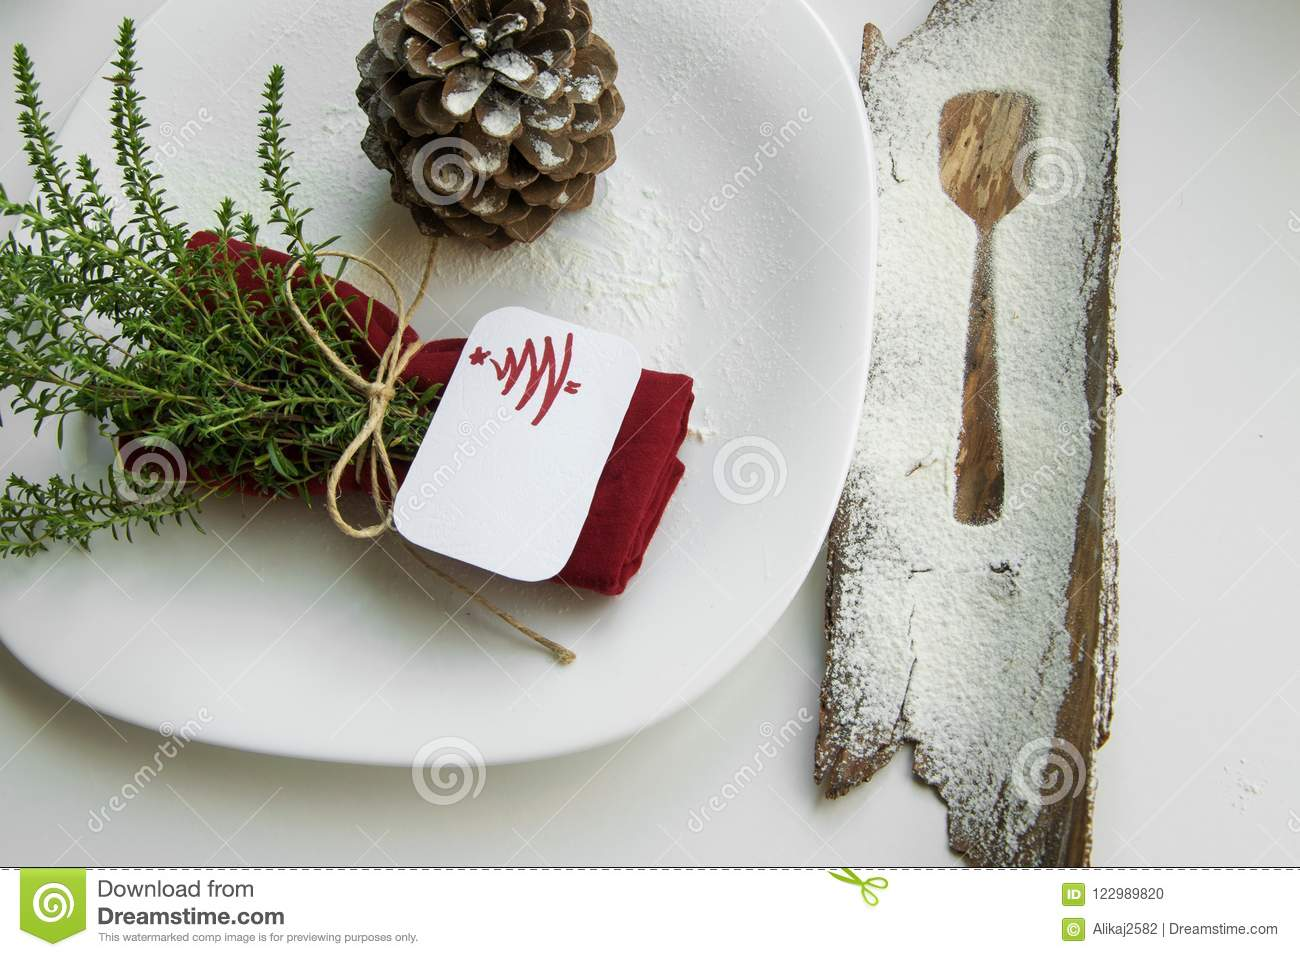 Arranging the table for the winter holidays concept